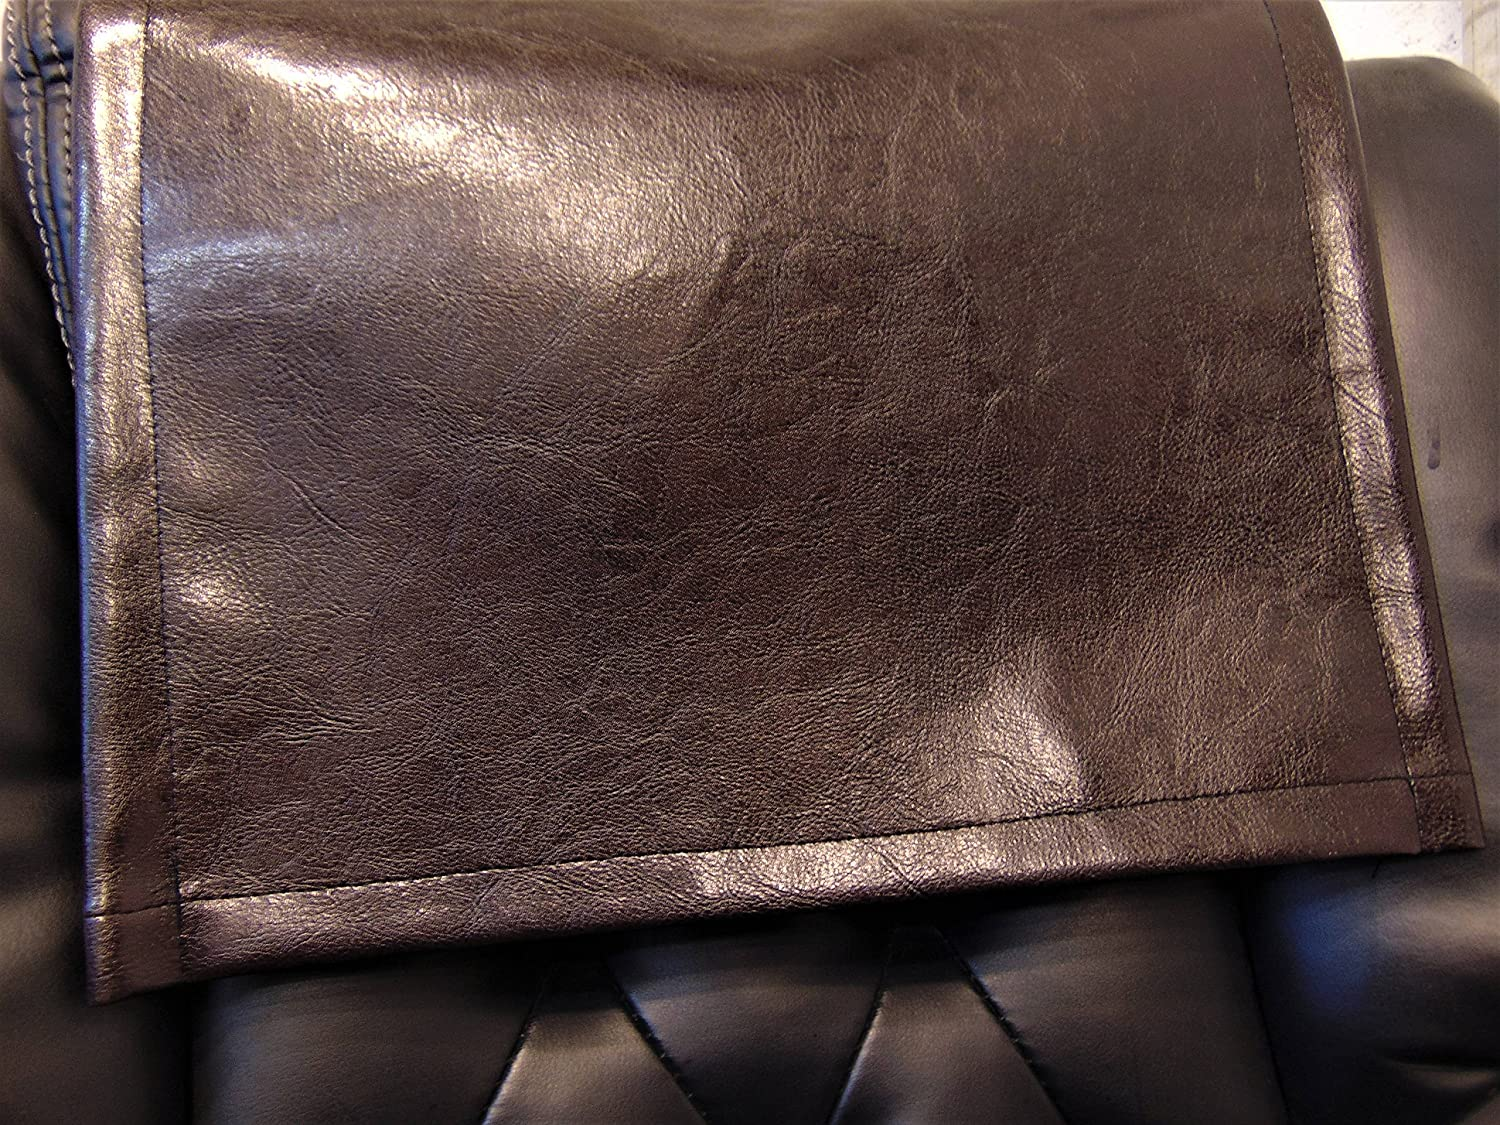 LUVFABRICS 24 5 ☆ popular Omaha Mall by 30 Inch Chocolate Faux Houston Vi Brown Leather